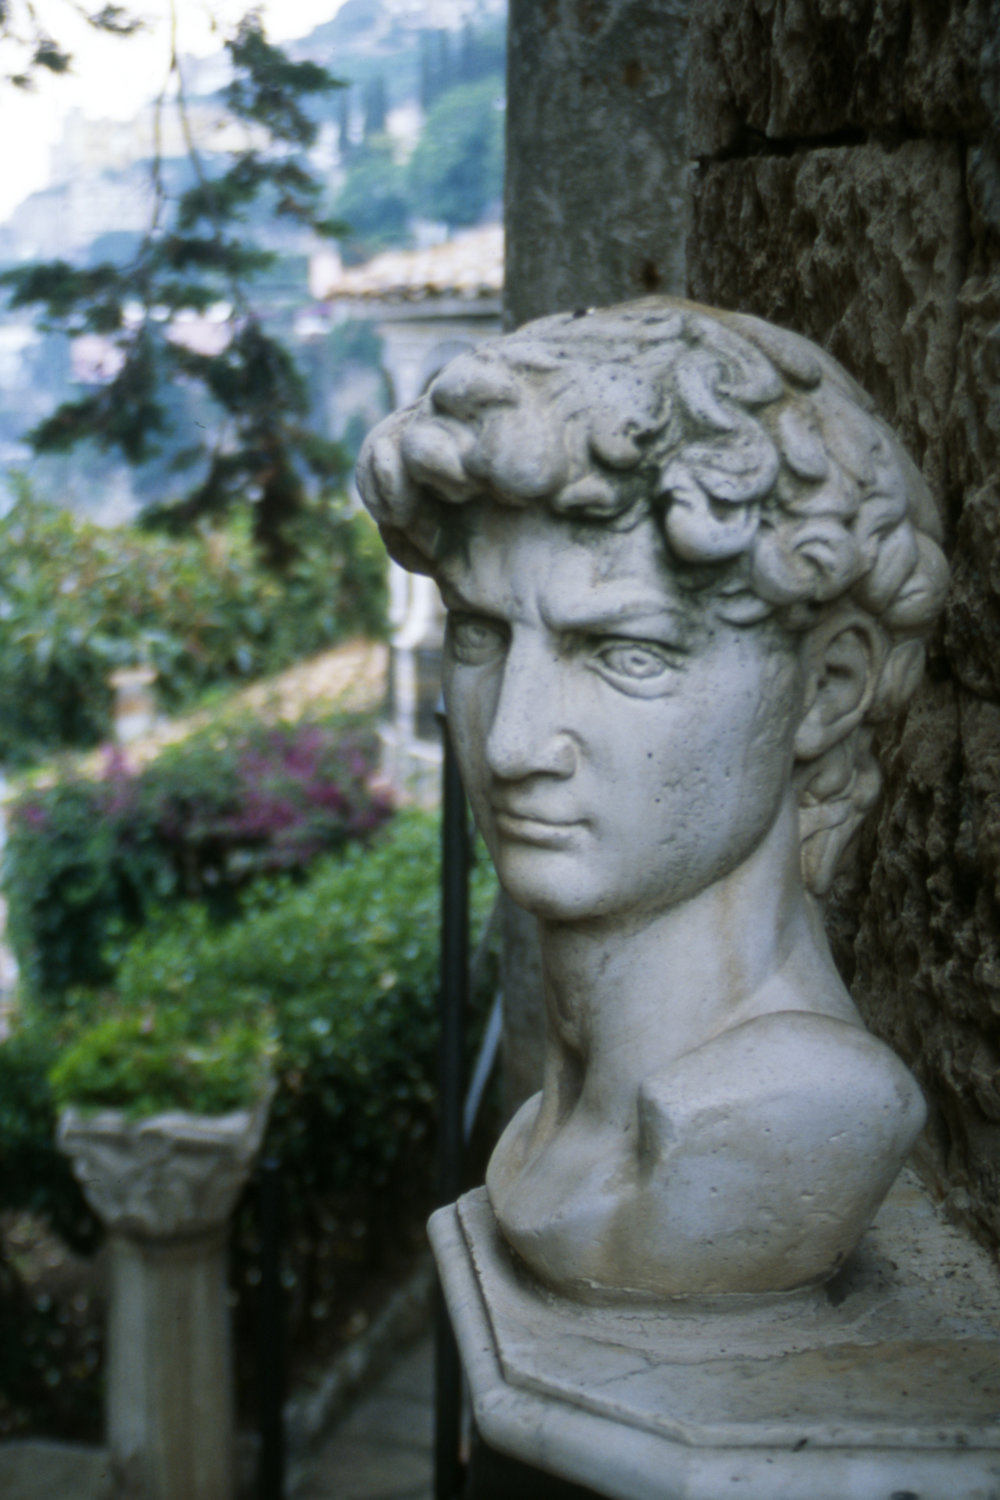 16_pc_IT_0705_F0125_ARC-16.jpg